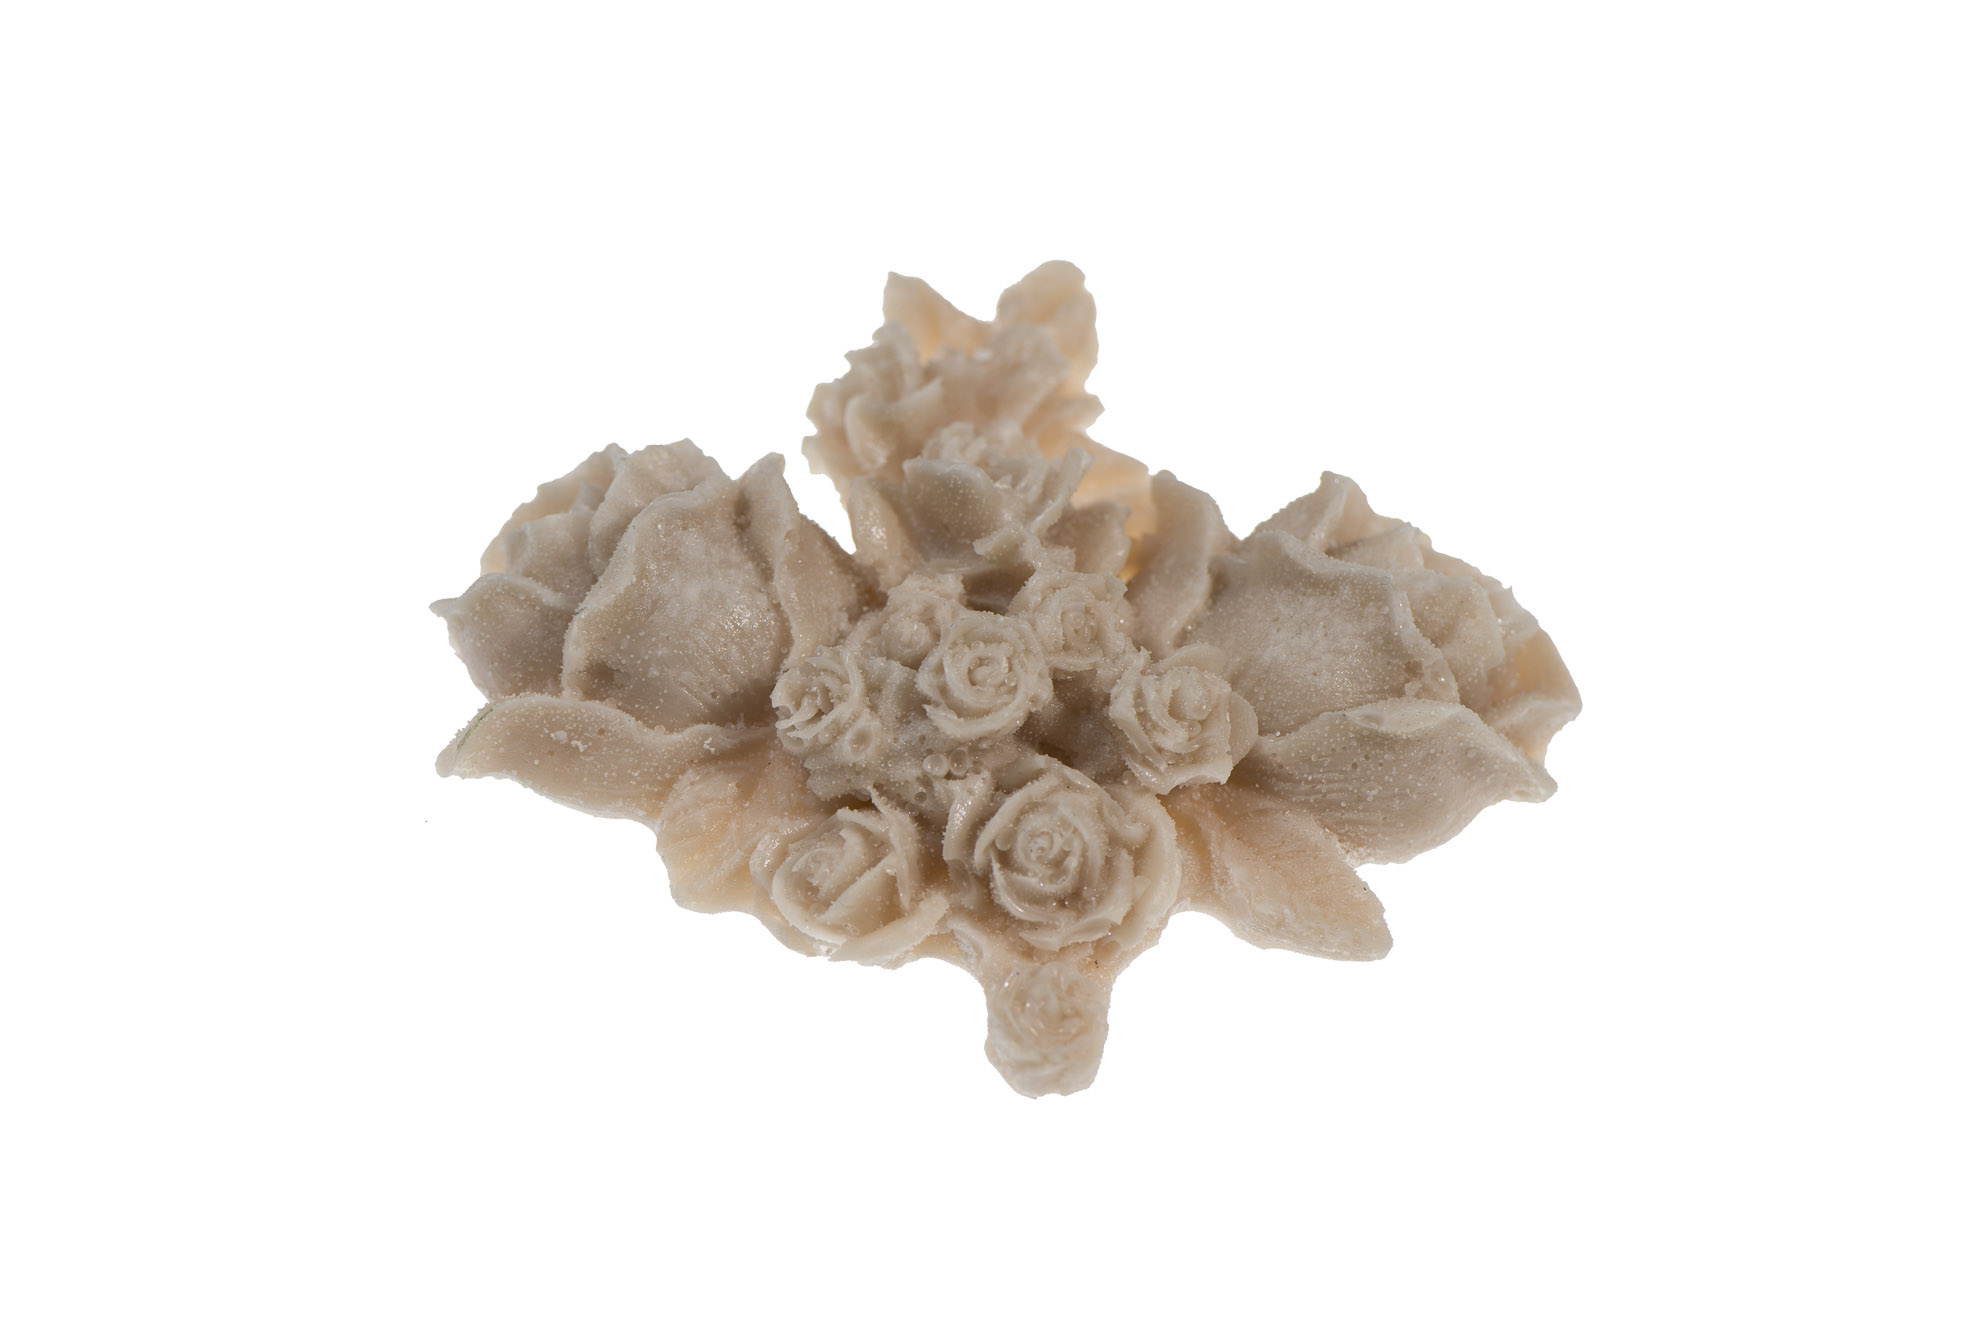 Shabby vintage chic french provincial rosy posy furniture applique